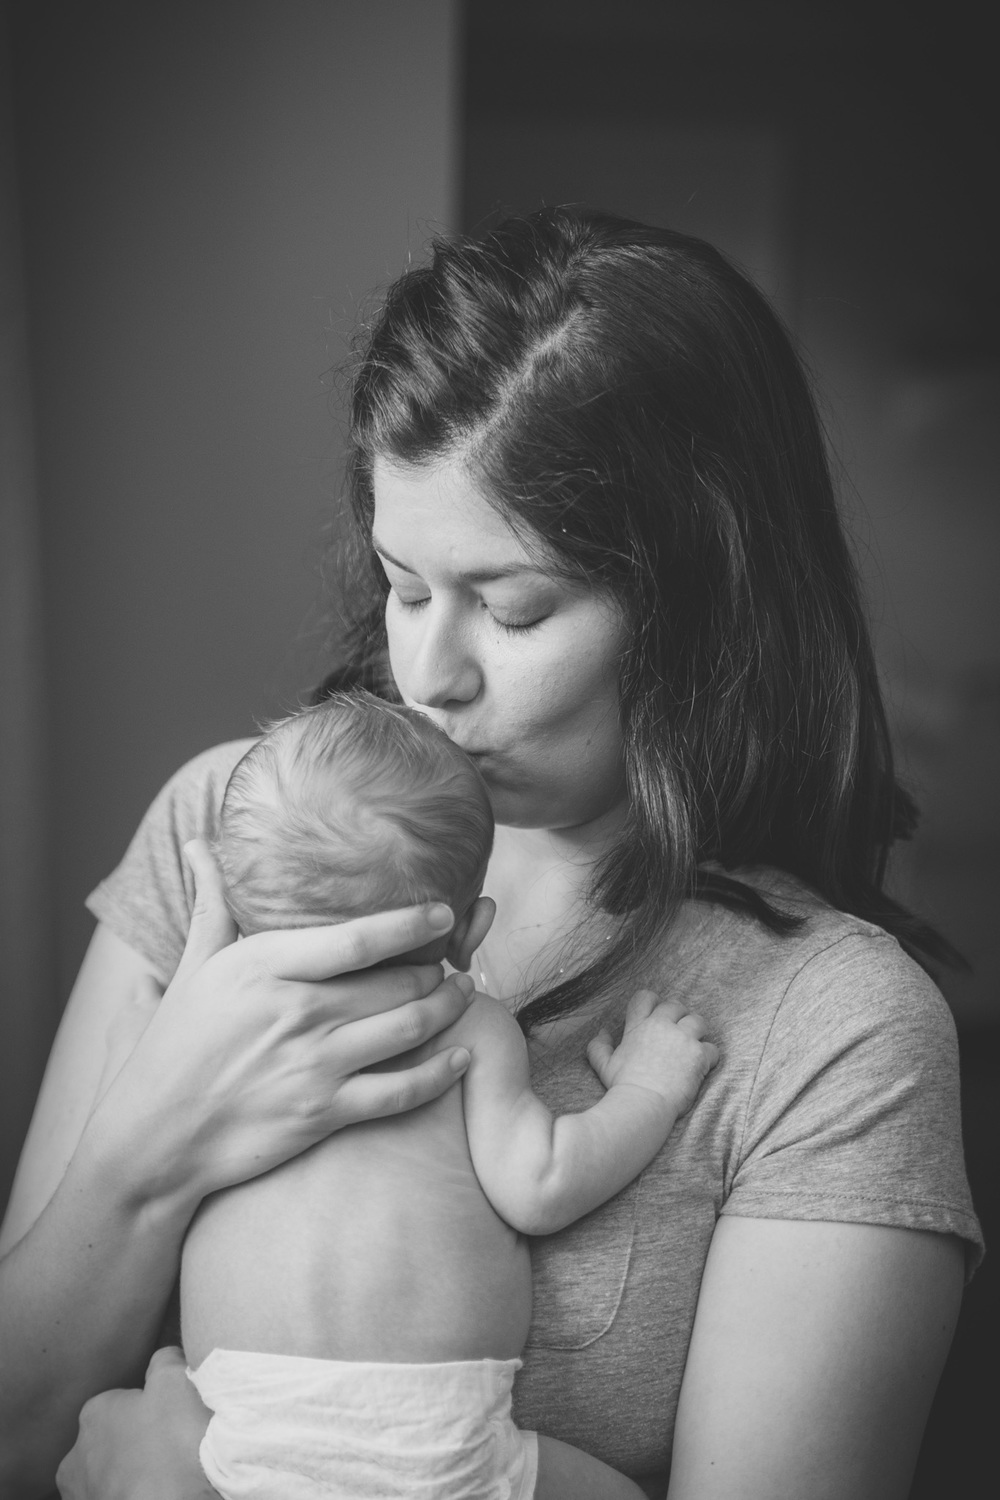 lifestyle_session_newborn_family_home_lynhcburg_va_photographers015.jpg